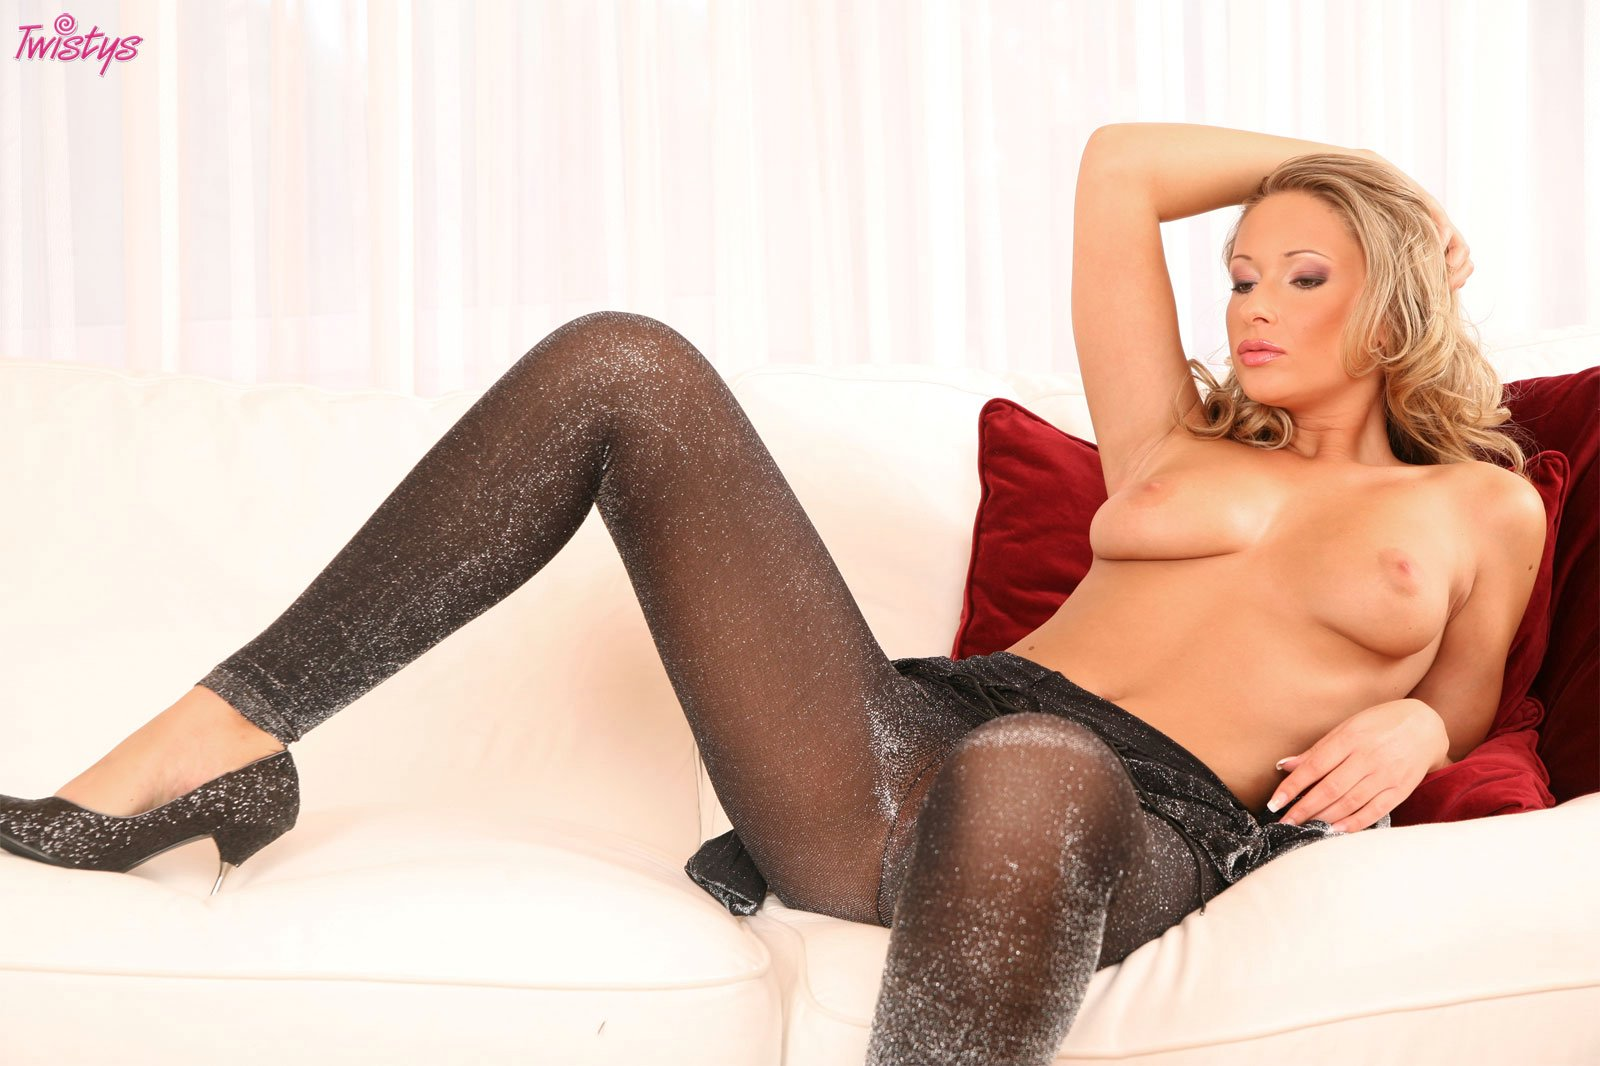 Roxy Carter in body pantyhose stripping and playing with a ...